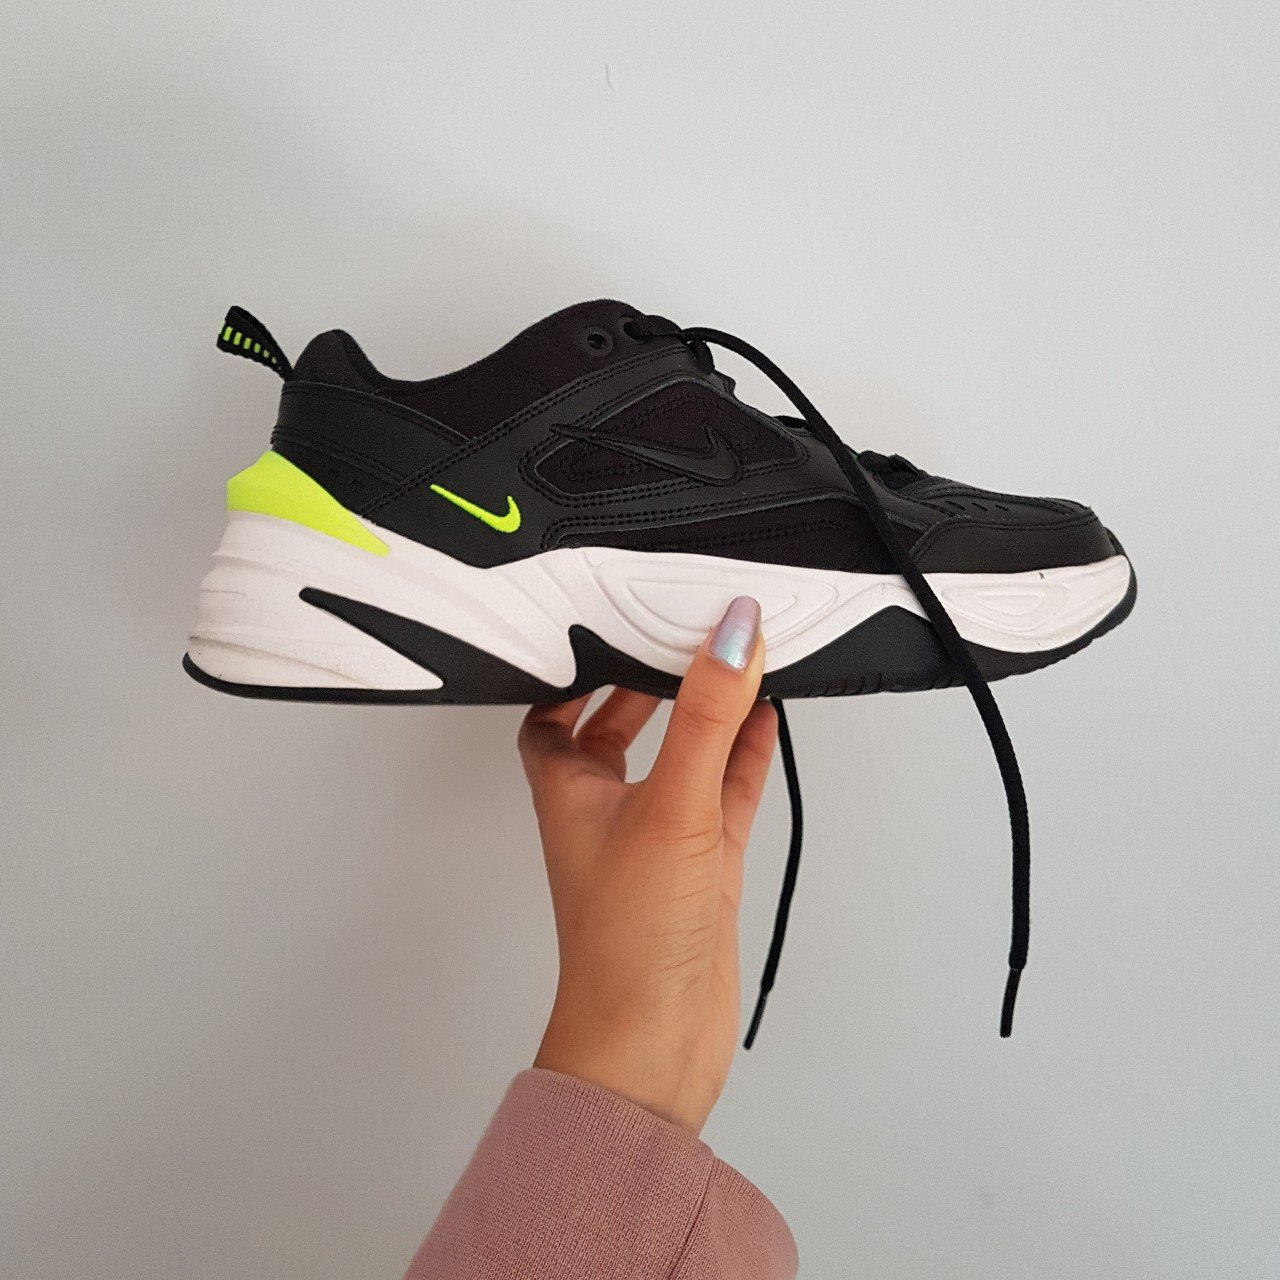 981dfc3d7509 Nike Tekno M2k Black Neon Volt Monarch. UK 4.5 but could fit - Depop